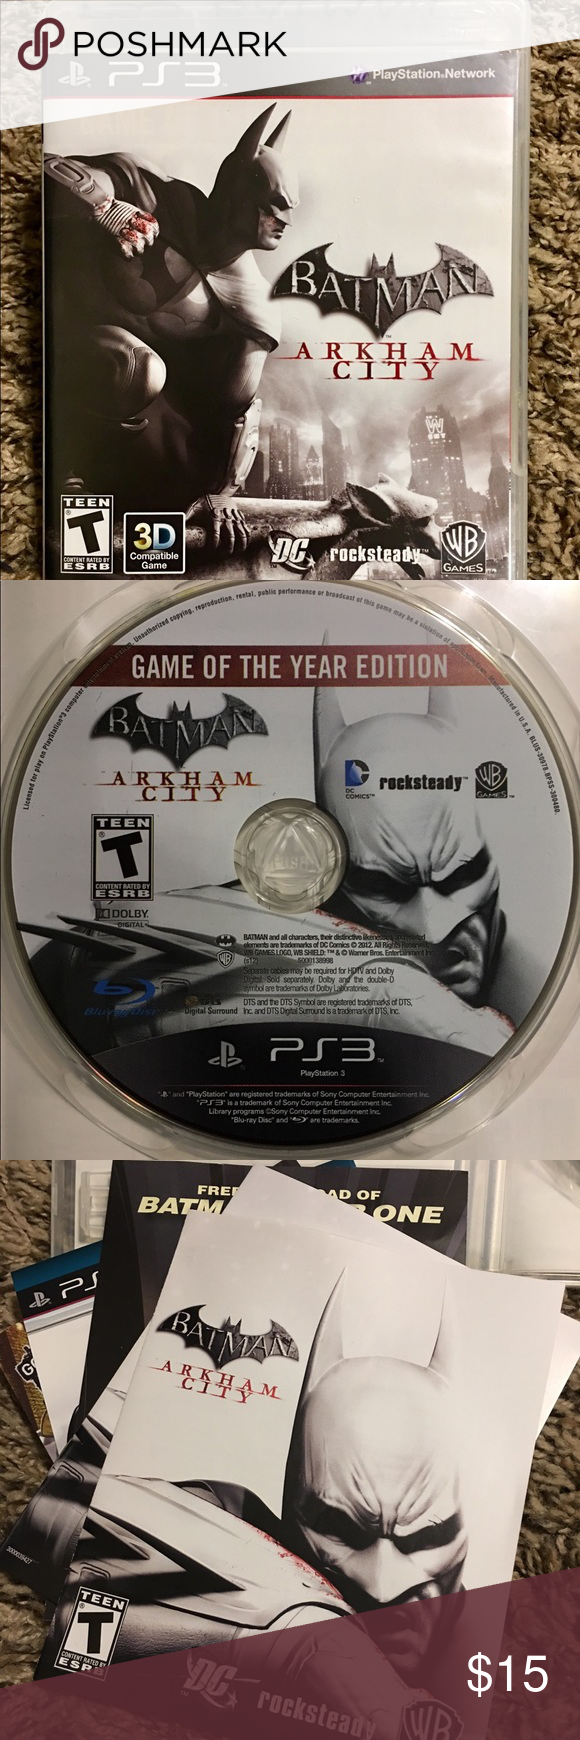 Ps3 Batman Arkham City Video Game (With Images)